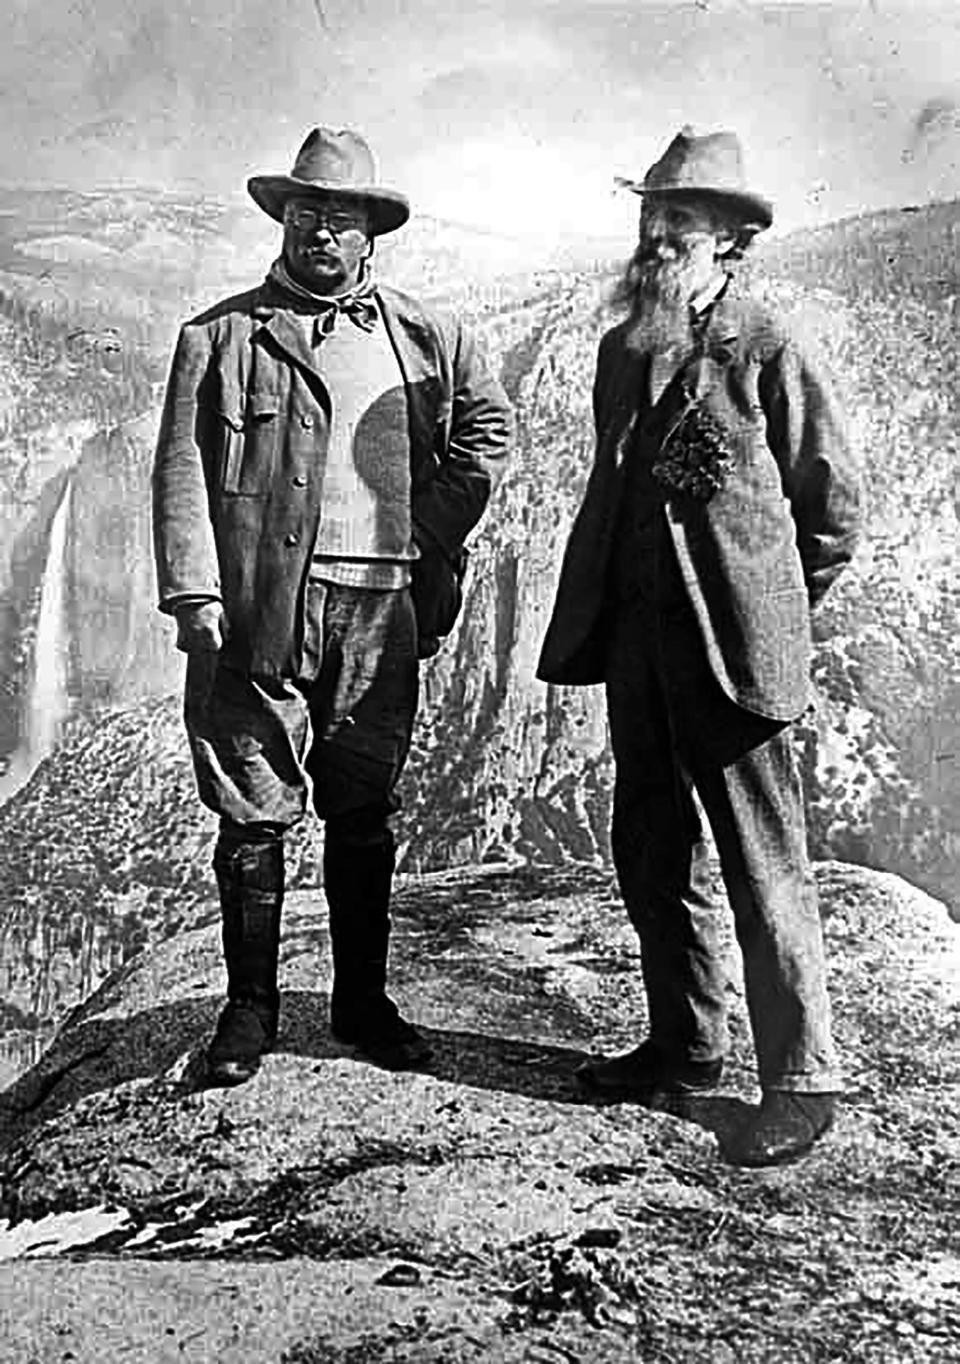 FILE - This May 2013 photo provided by the U.S. National Park Service shows President Theodore Roosevelt, left, and naturalist John Muir during their camping trip, n Yosemite National Park near Glacier Point. The Sierra Club is reckoning with the racist views of founder John Muir, the naturalist who helped spawn environmentalism. The San Francisco-based environmental group said Wednesday, July 22, 2020, that Muir was part of the group's history perpetuating white supremacy. Executive Director Michael Brune says Muir made racist remarks about Black people and Native Americans, though his views later evolved. (U.S. National Park Service via AP)